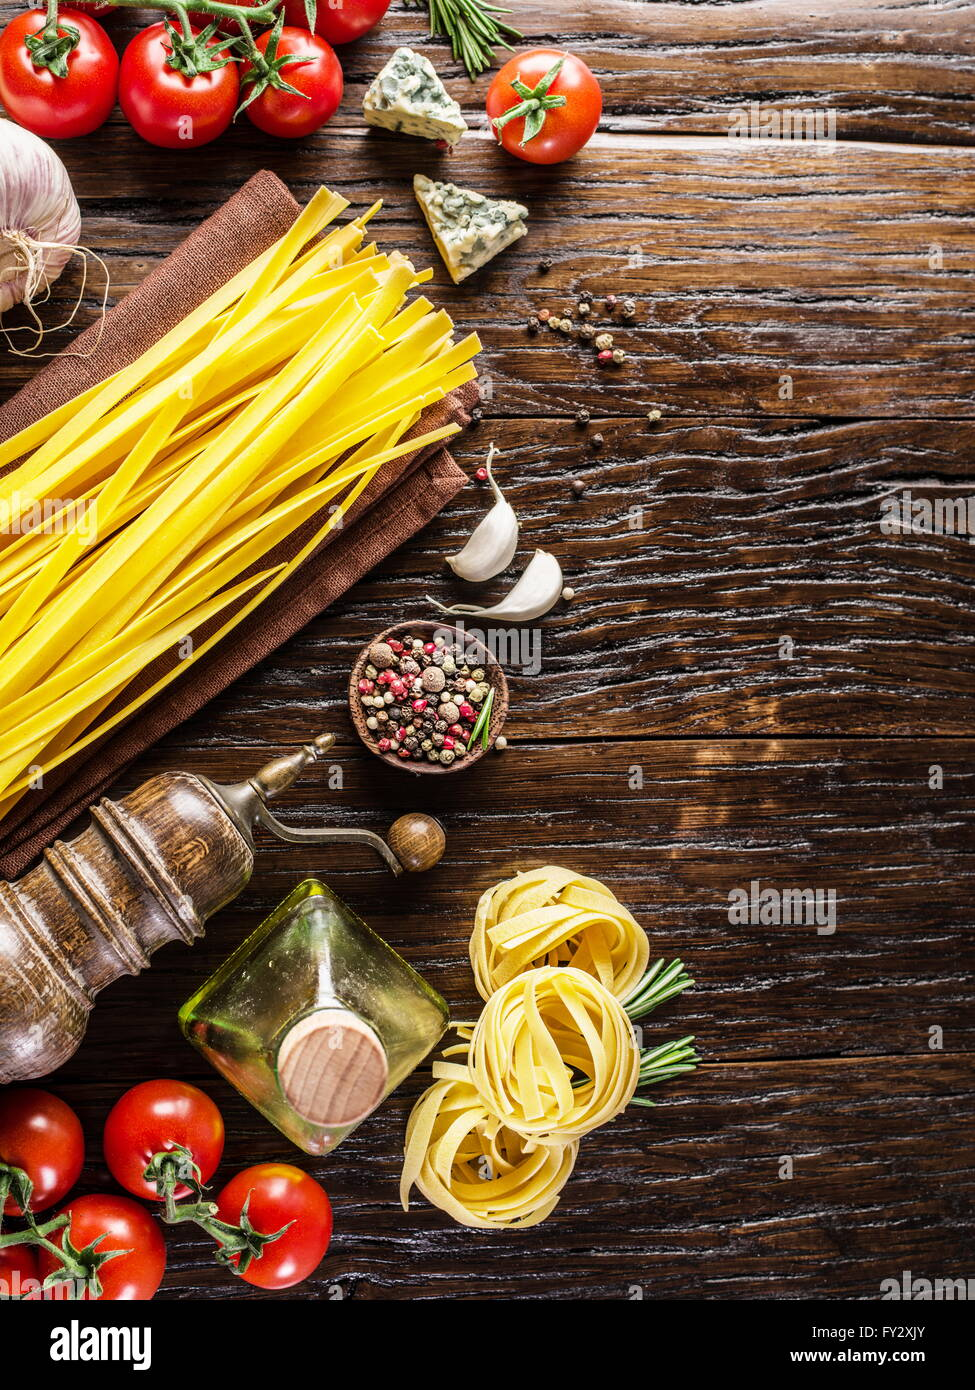 Pasta ingredients. Cherry-tomatoes, spaghetti pasta, rosemary and spices on the wooden table. - Stock Image